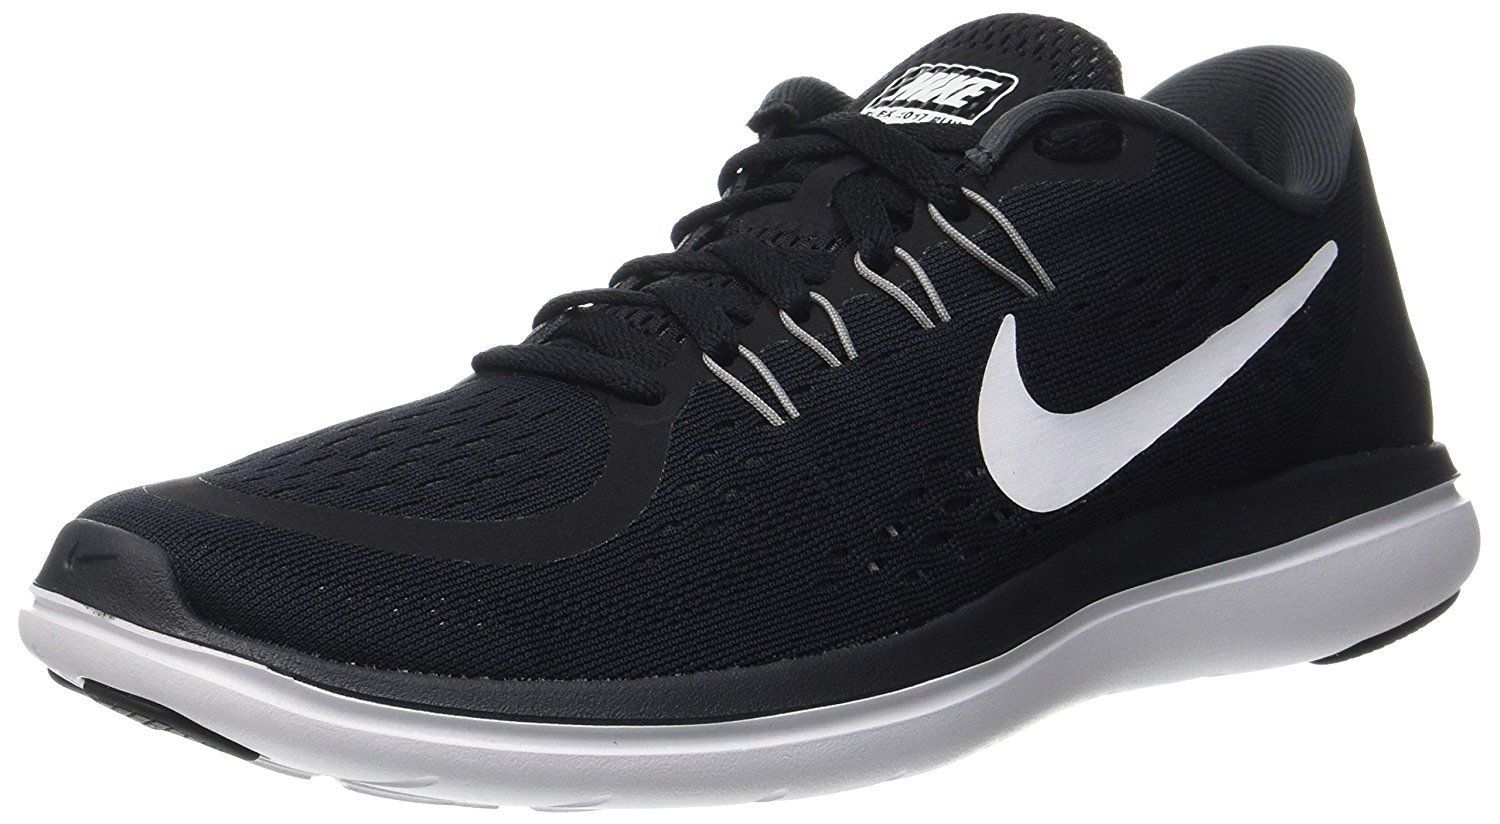 huge discount 67afb 51b8b ... Nike Flex 2017 RN Sz 10.5 Black White-Anthracite Men s Running Shoes  898457-